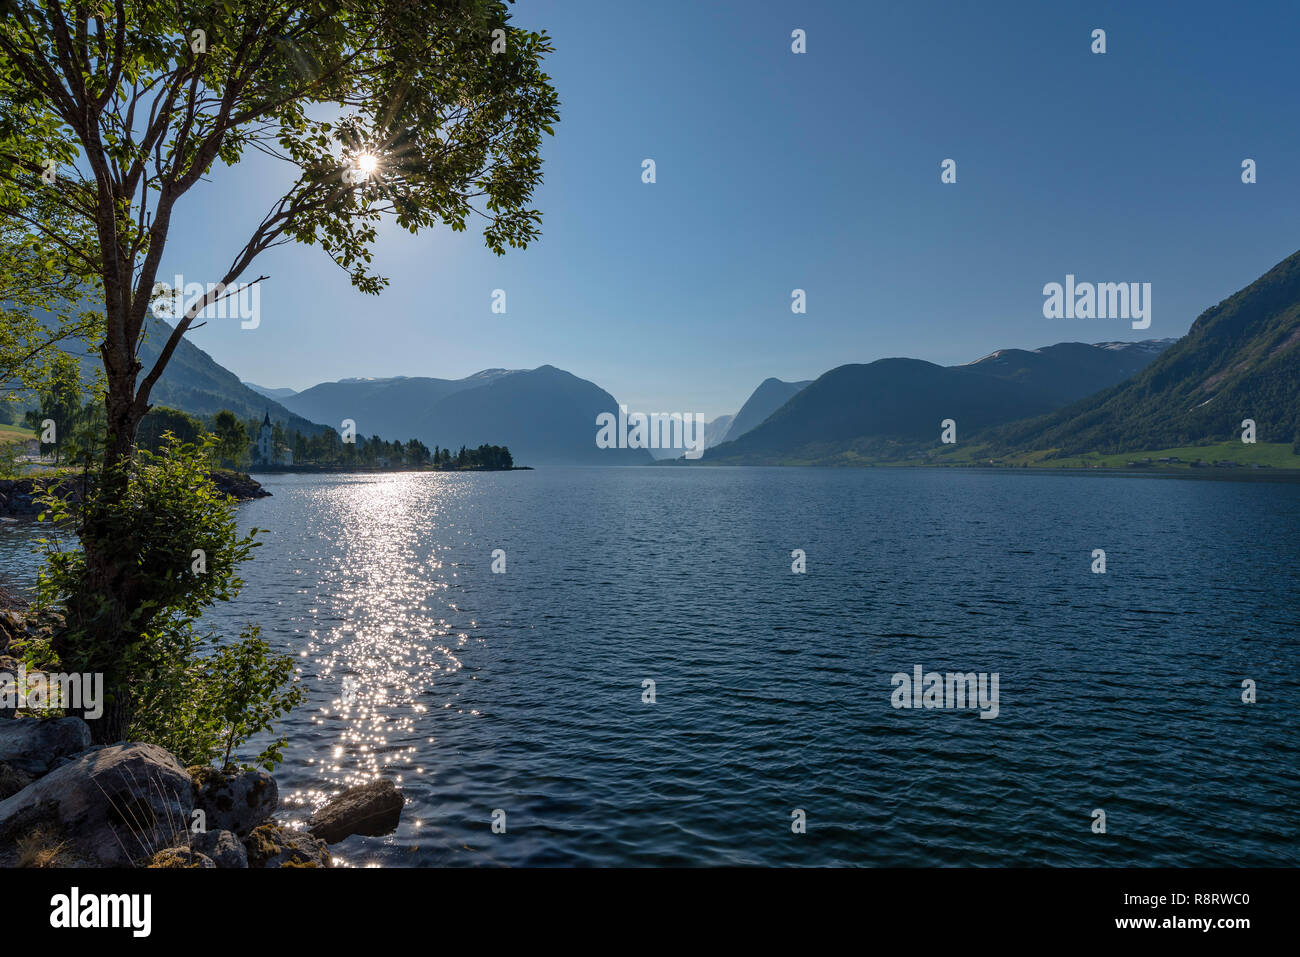 Blue lake surrounded by mountains, green trees under a clean blue sky. Norway, around Alhus. - Stock Image